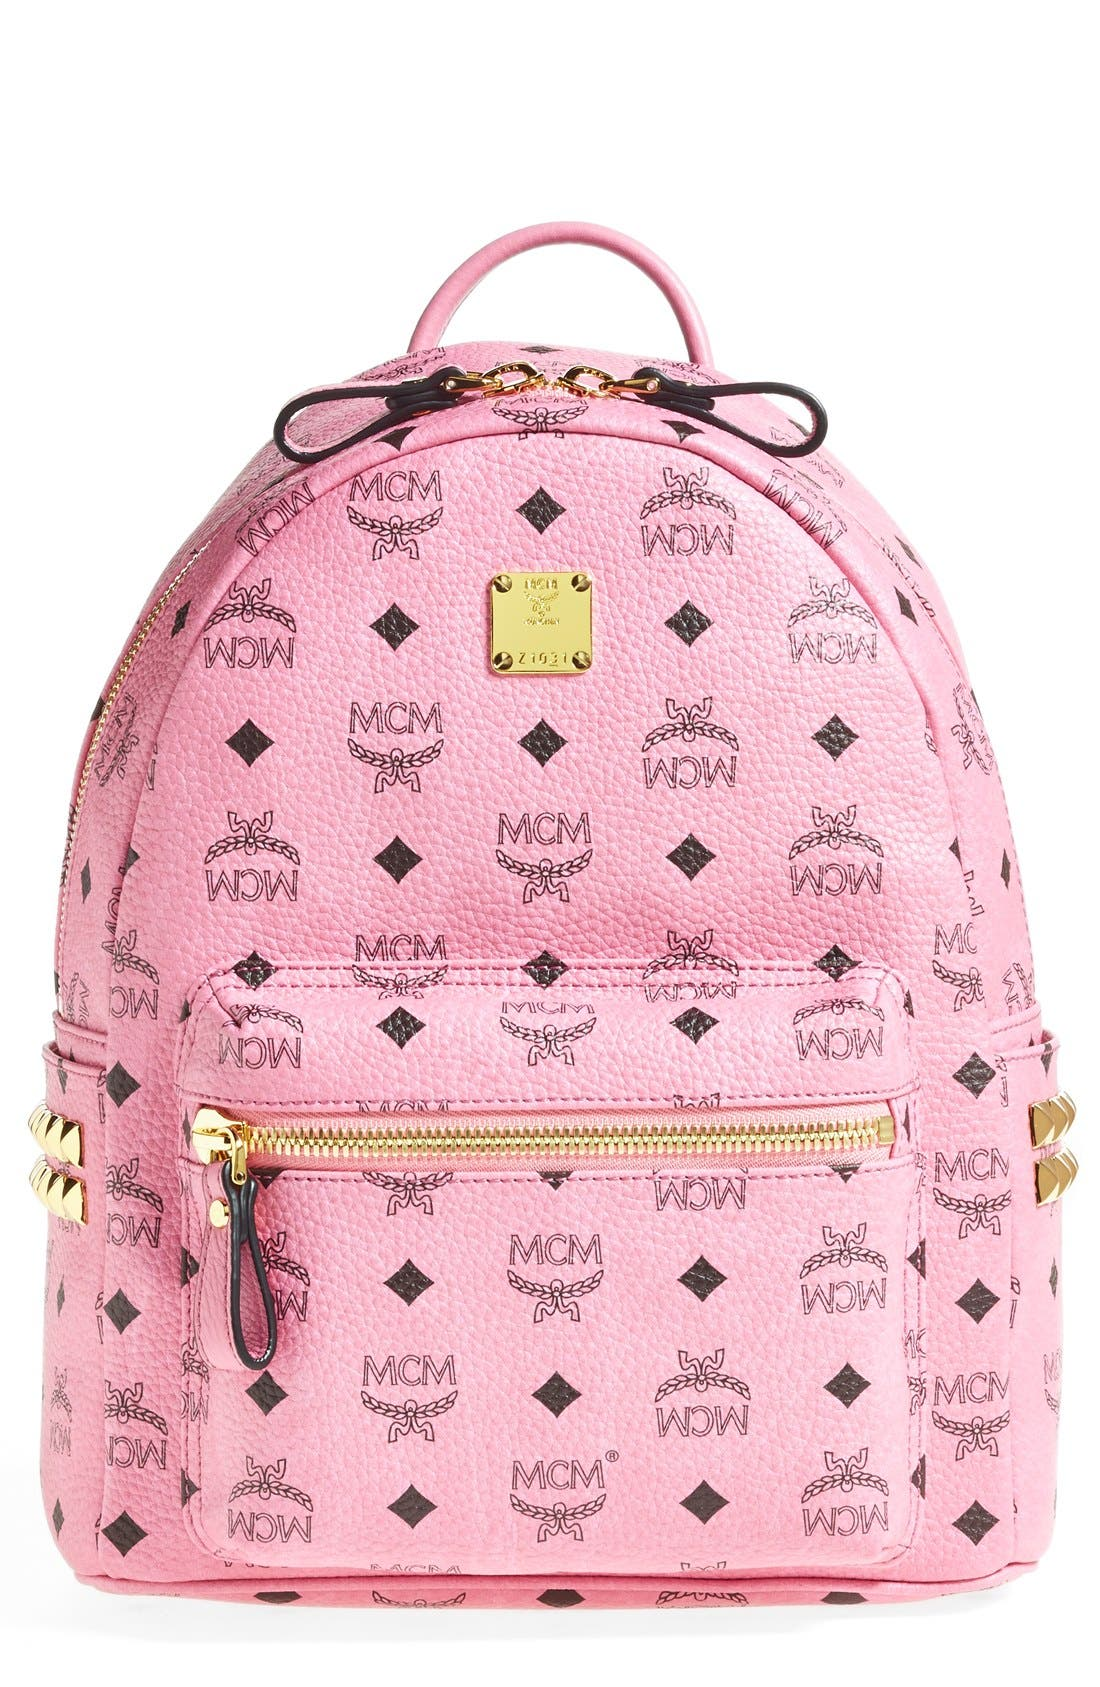 Main Image - MCM 'Small - Visetos' Coated Canvas Backpack